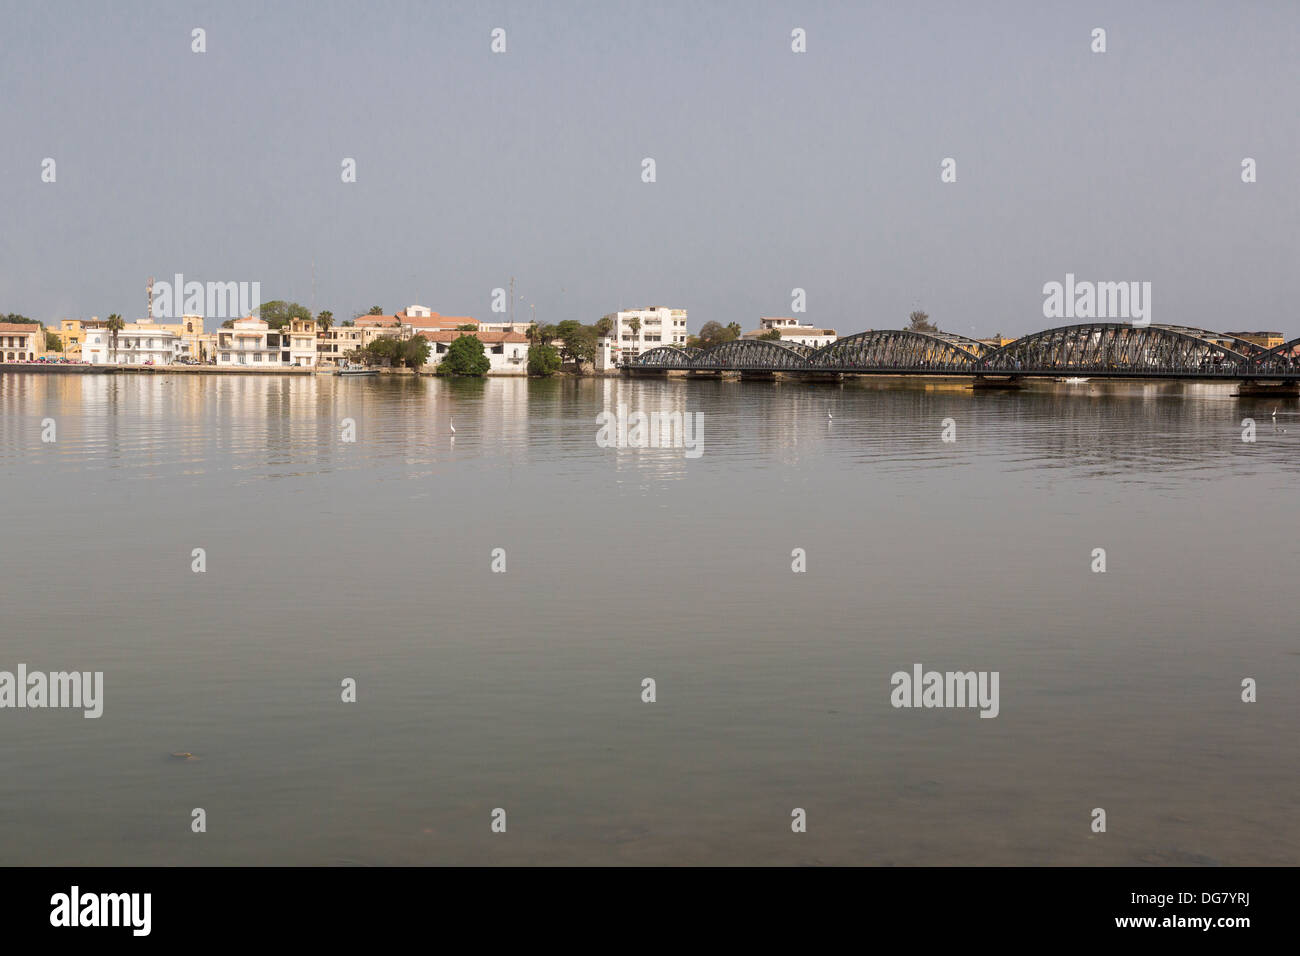 Senegal, Saint Louis. View from the Mainland, across the River Senegal, showing Pont Faidherbe, built 1897. - Stock Image